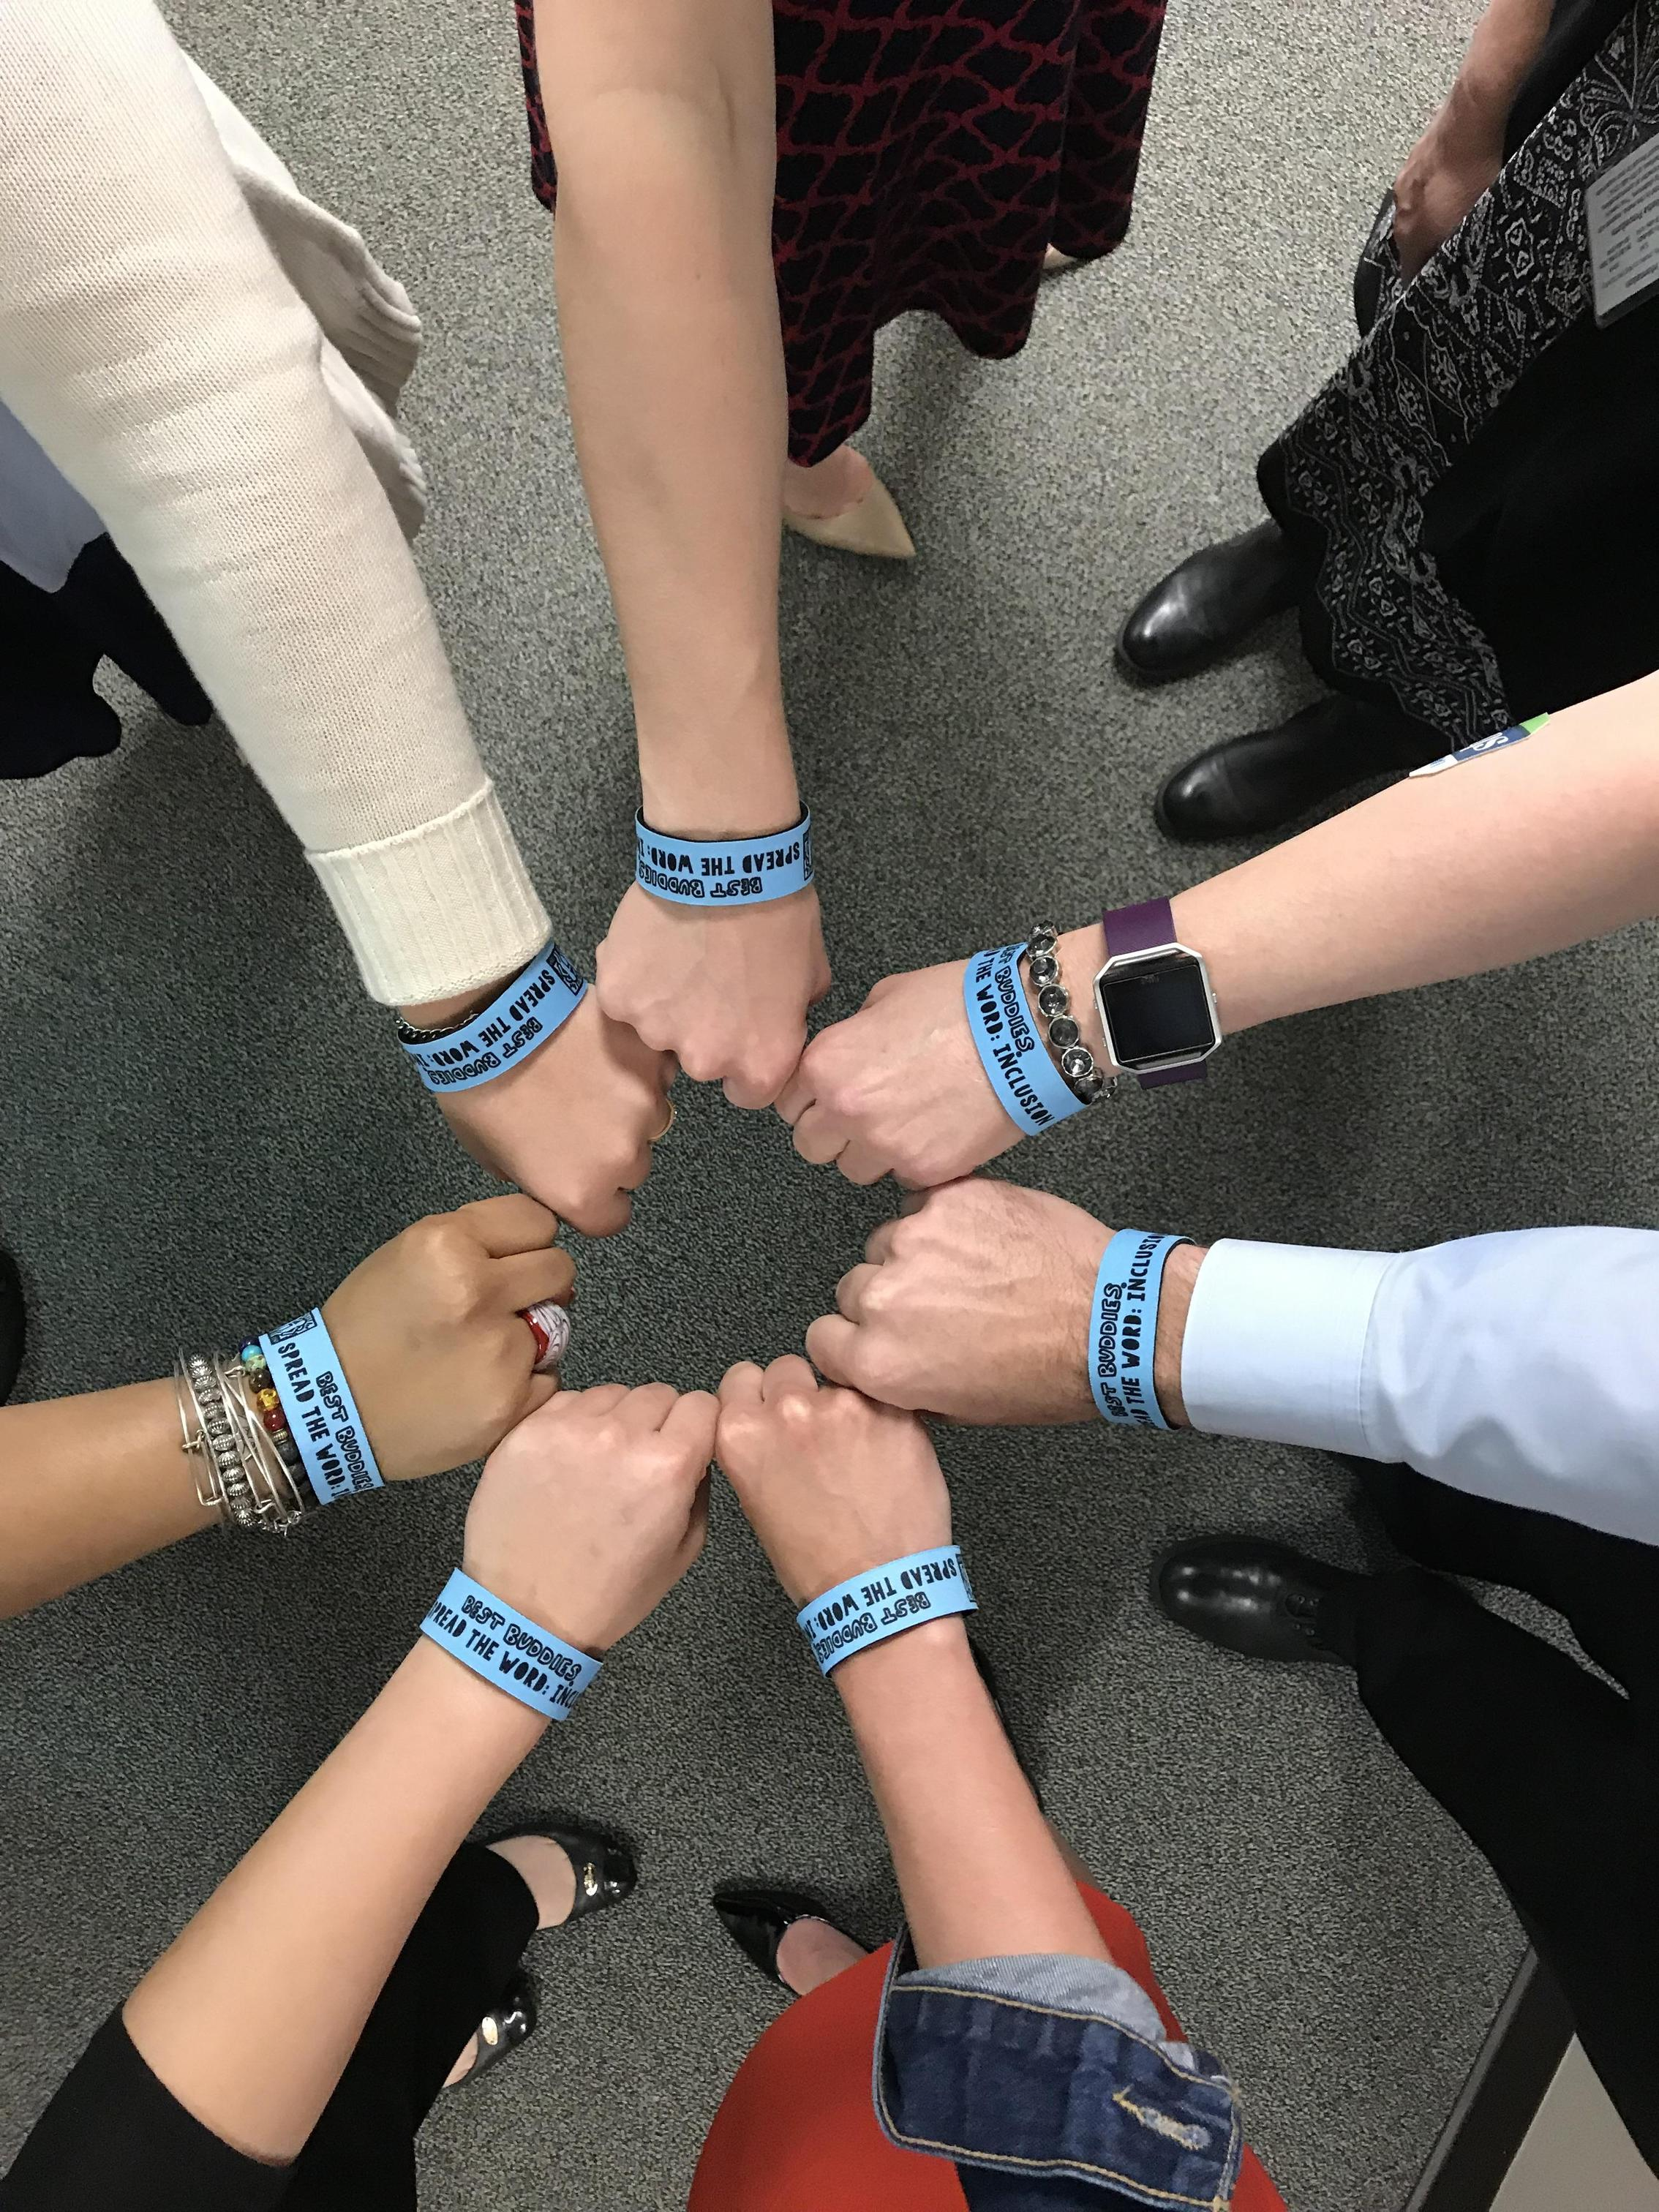 7 fists held together in a circle all wearing wristbands pledging inclusion